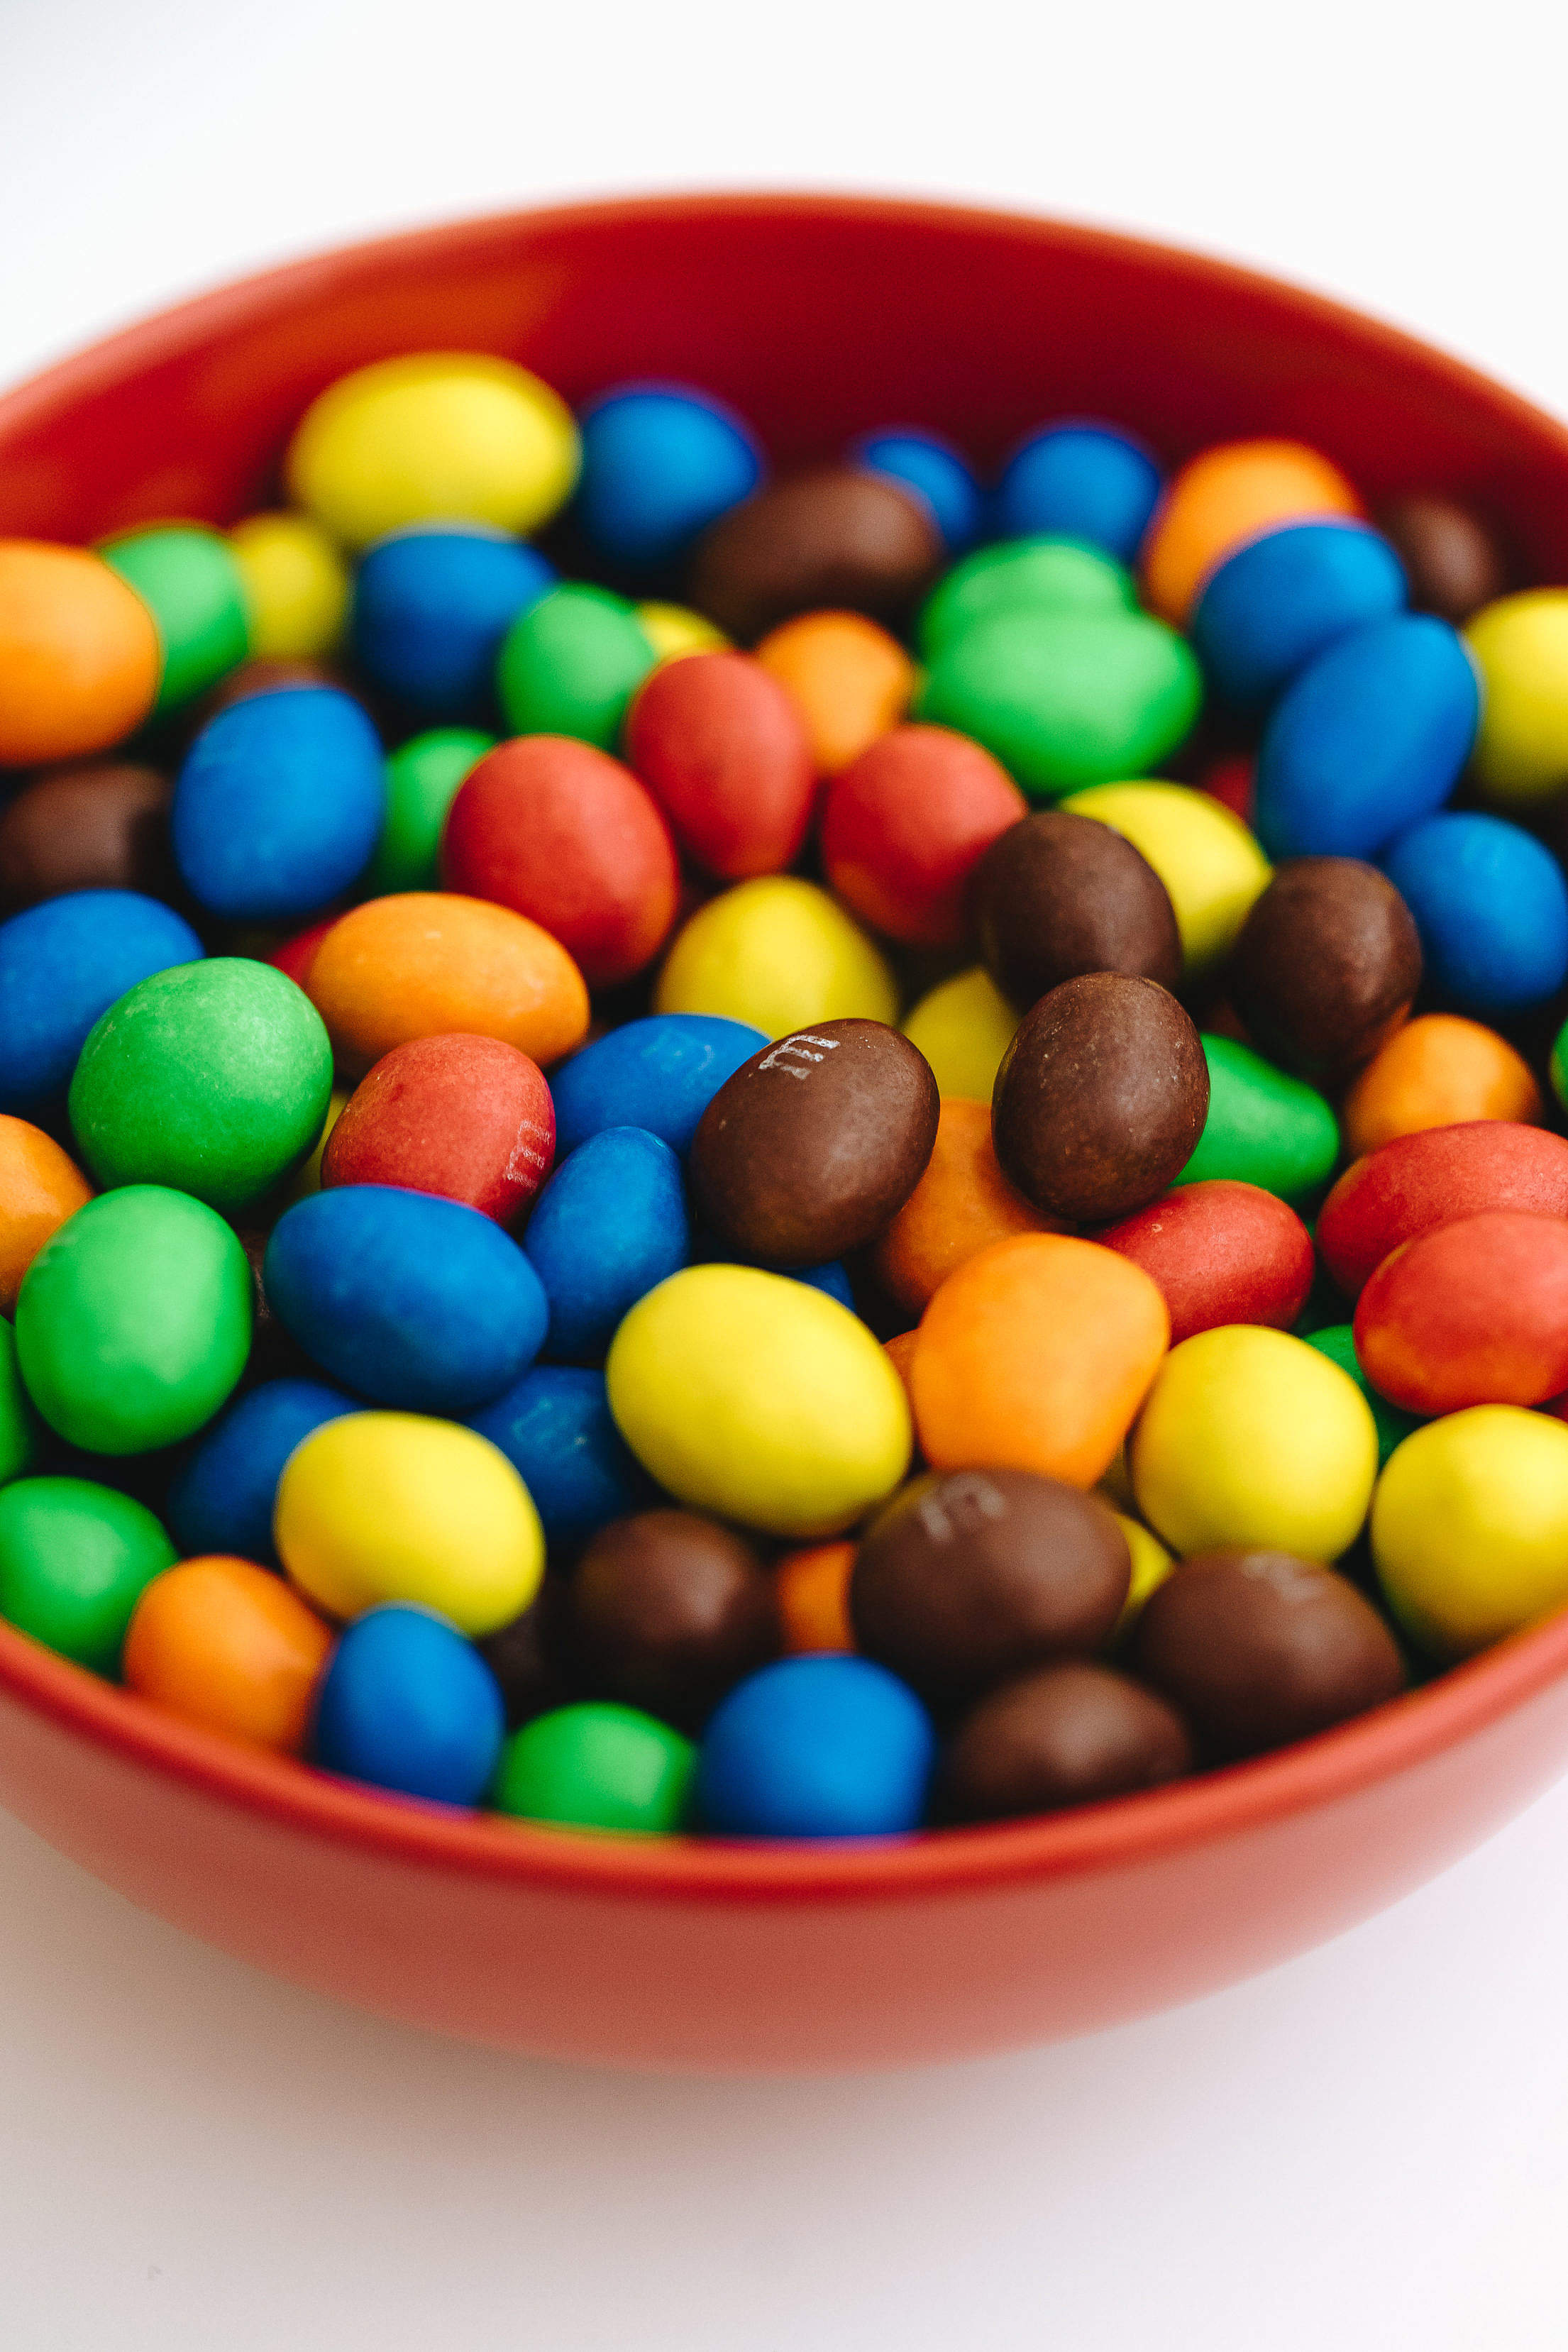 M&M's Peanut Chocolates in a Bowl Free Stock Photo